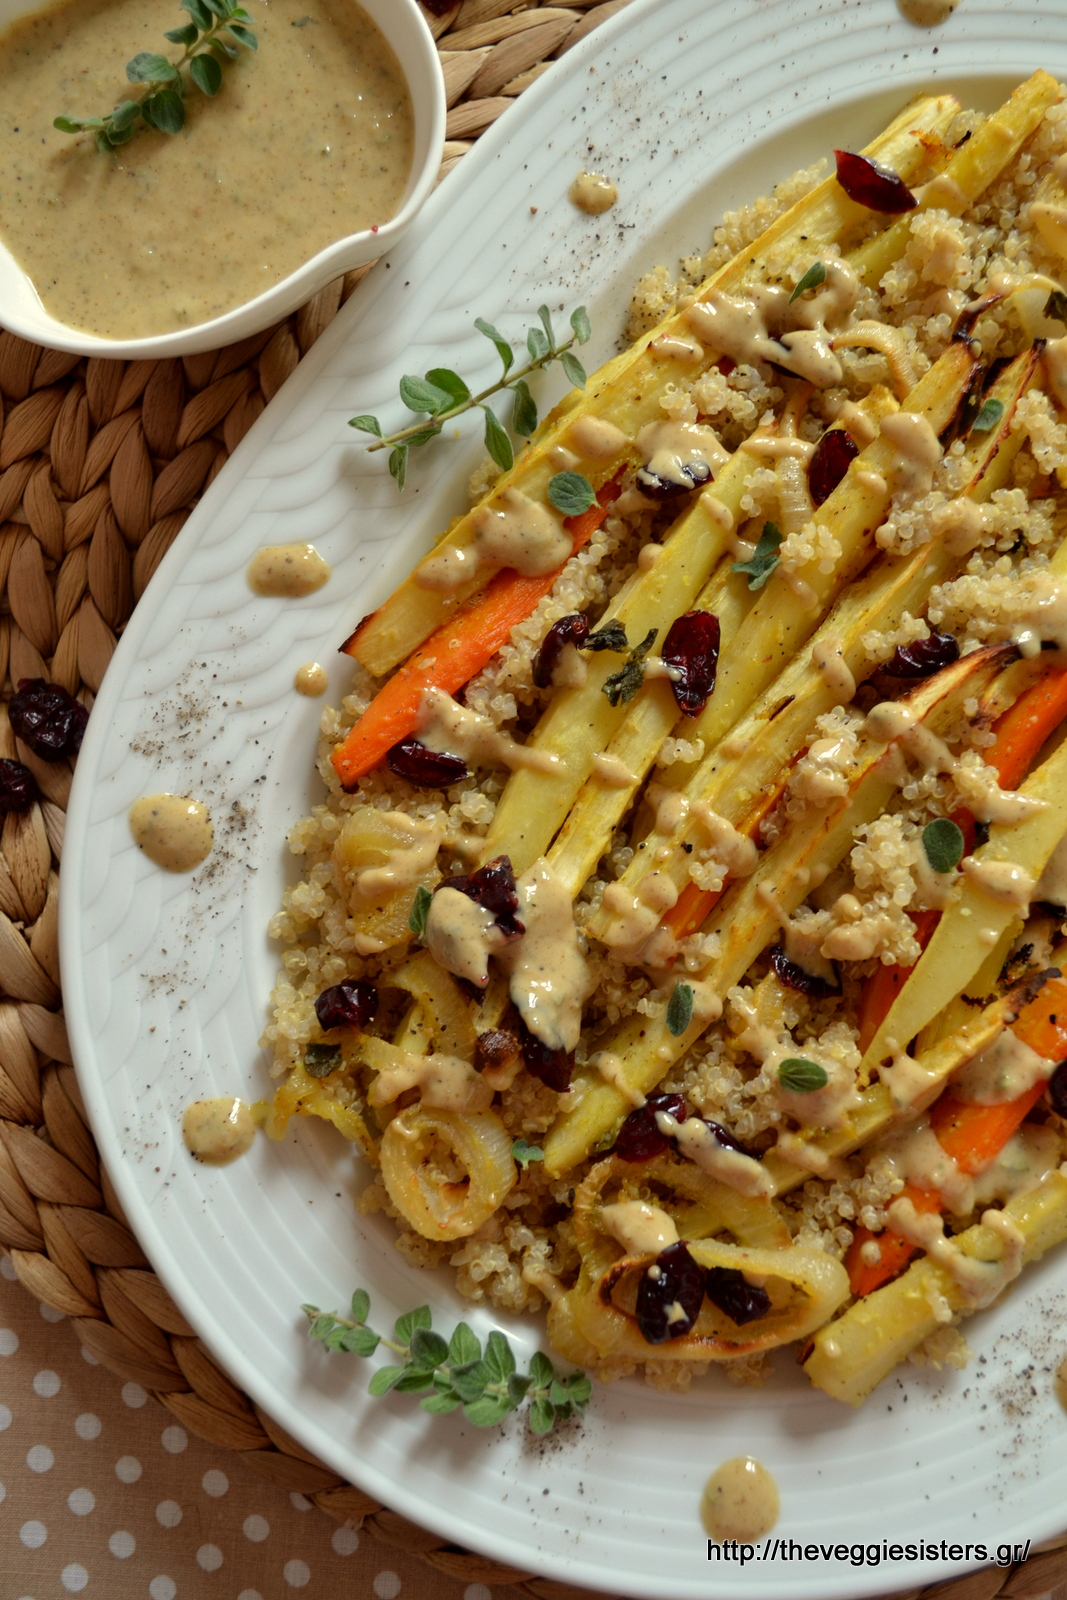 Roasted parsnip quinoa with tahini sauce